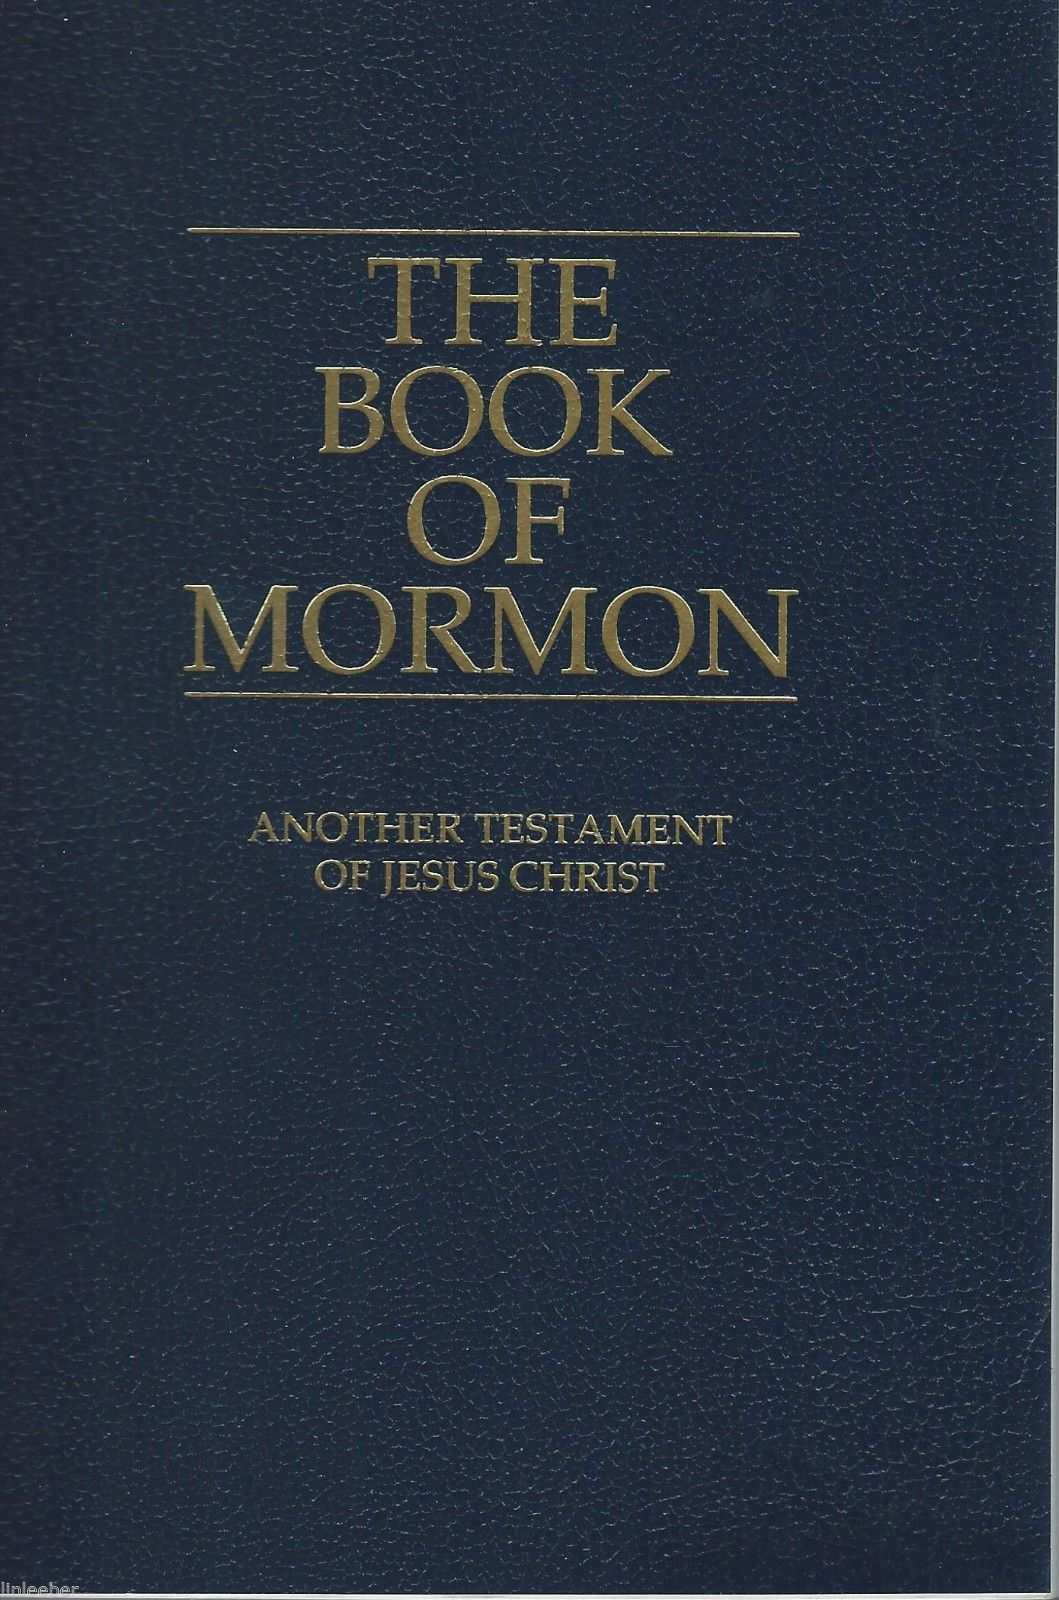 THE BOOK OF MORMON ANOTHER TESTAMENT OF JESUS CHRIST 1981 SC 2000 Print MINT